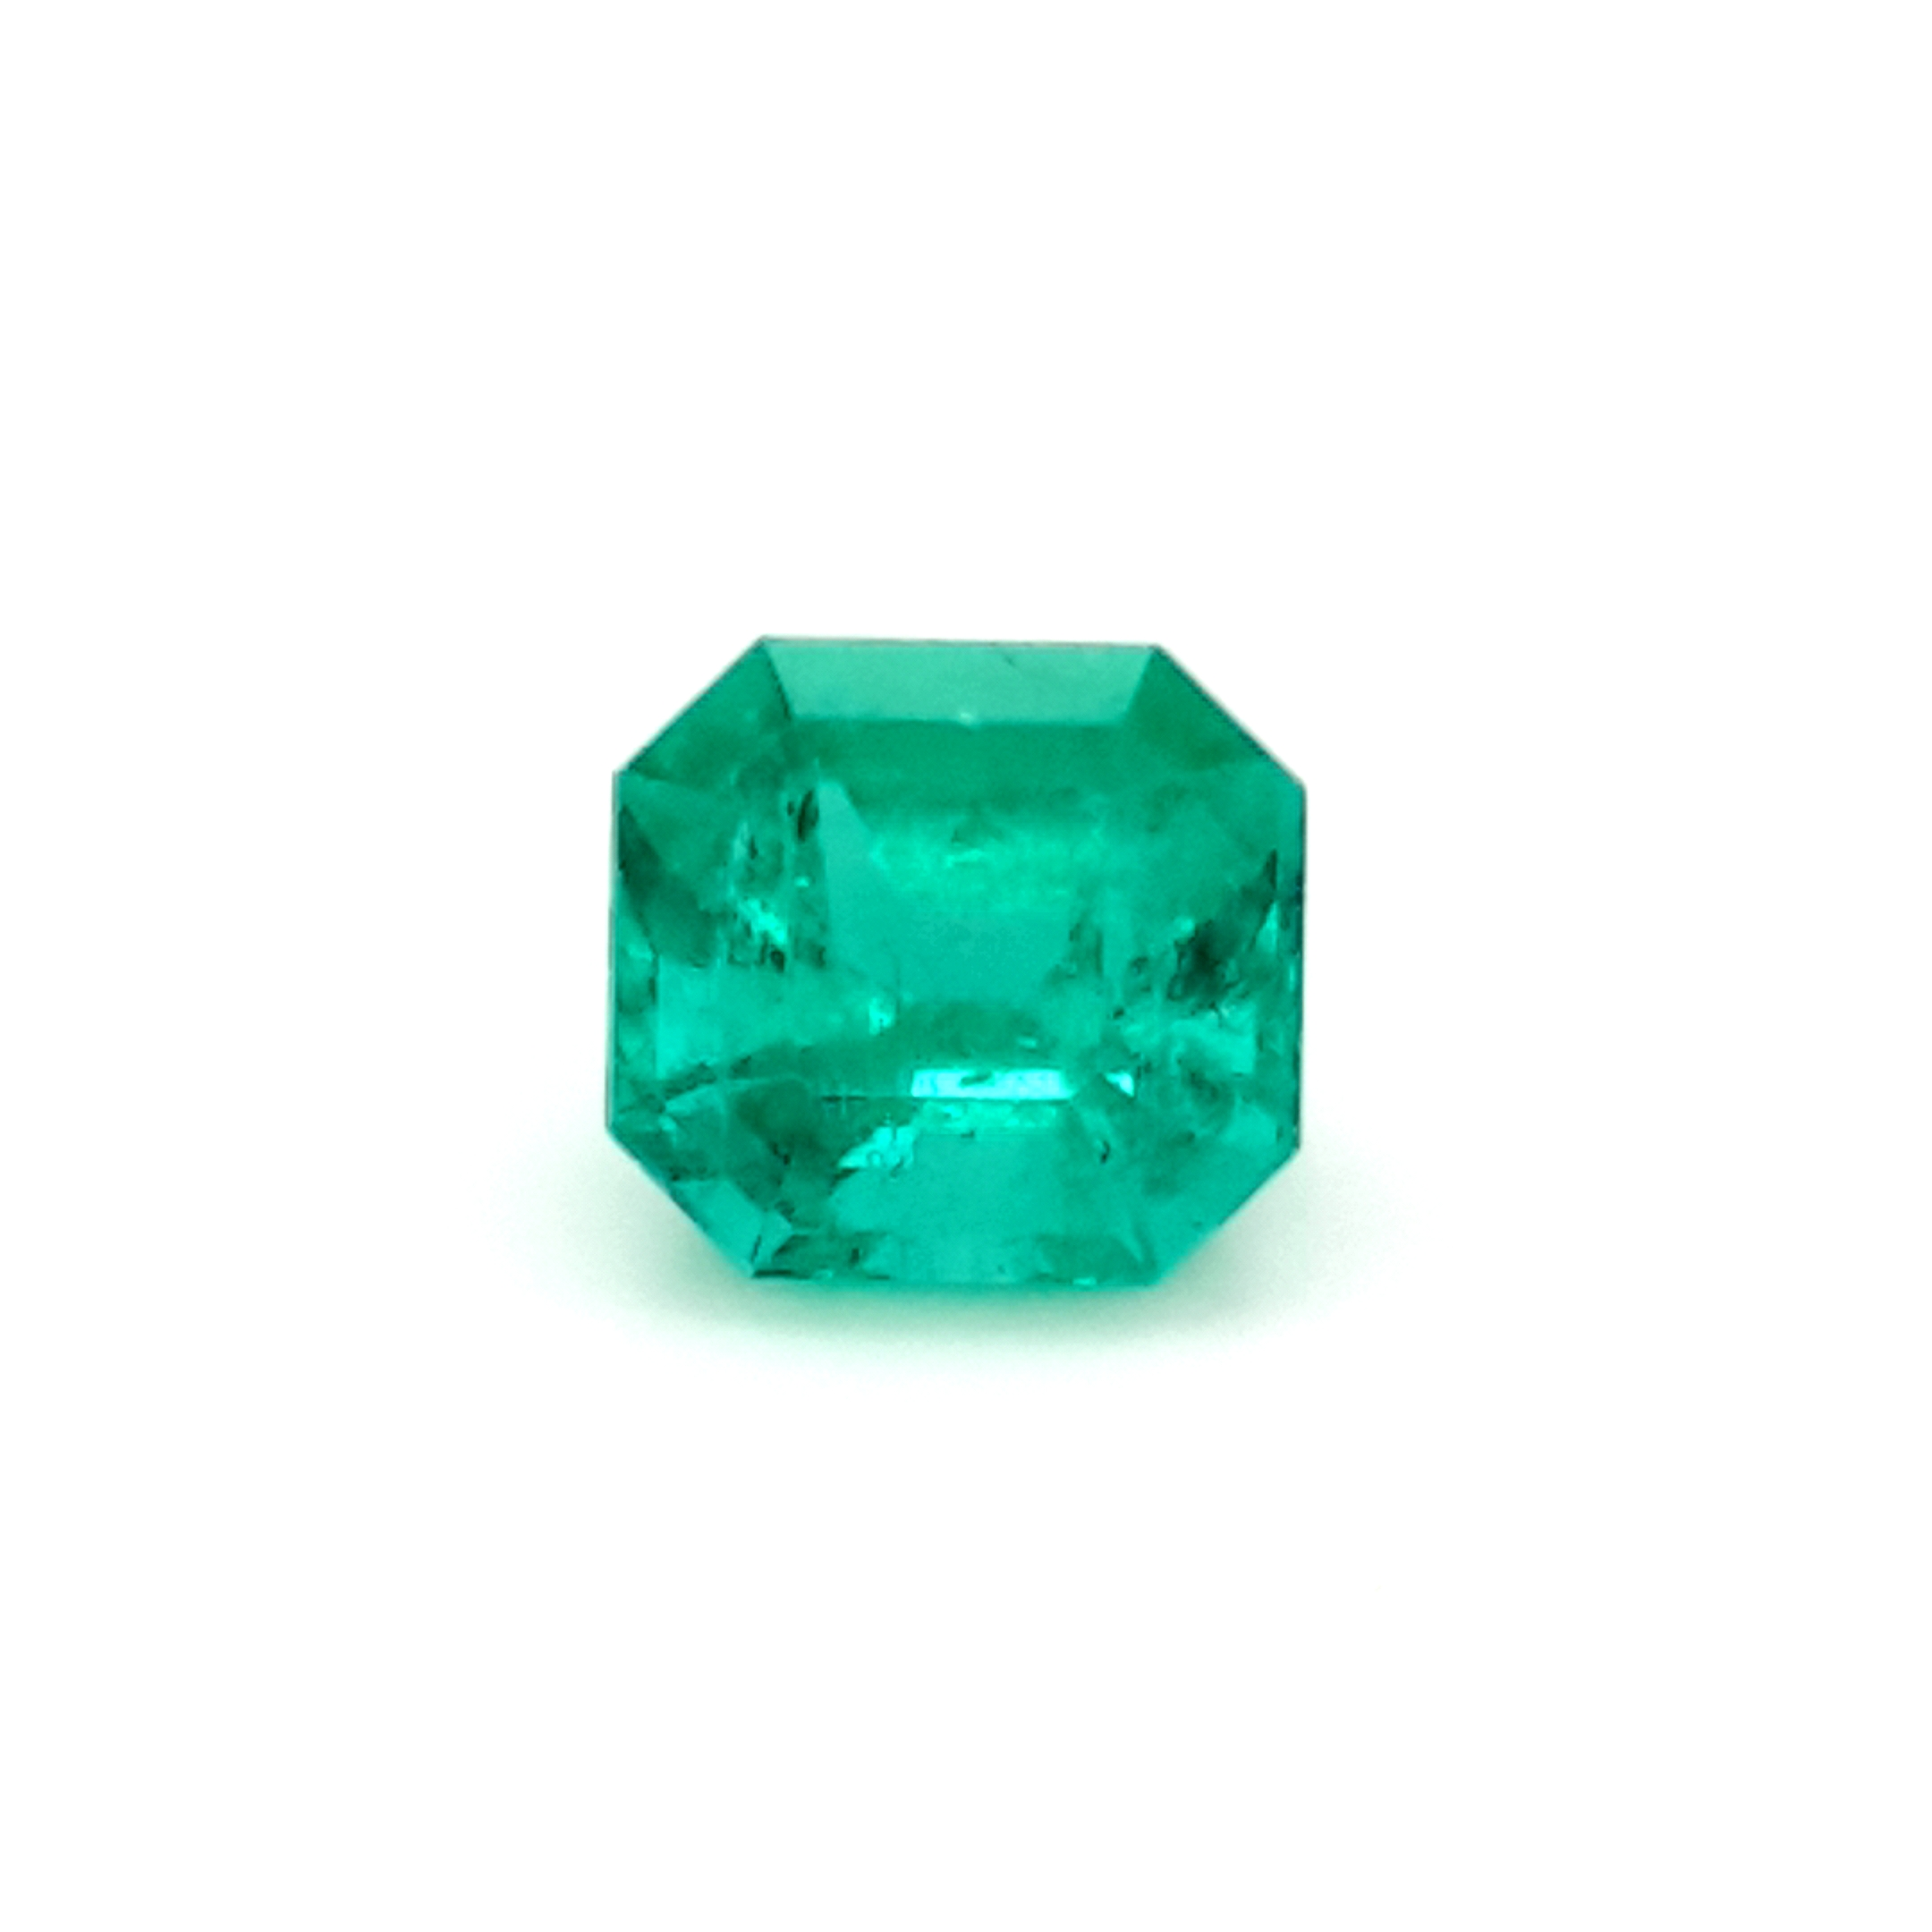 4,81ct. Emerald from Colombia cert. EML14D5 ClaudiaHamann__2021-03-25-23-06-09